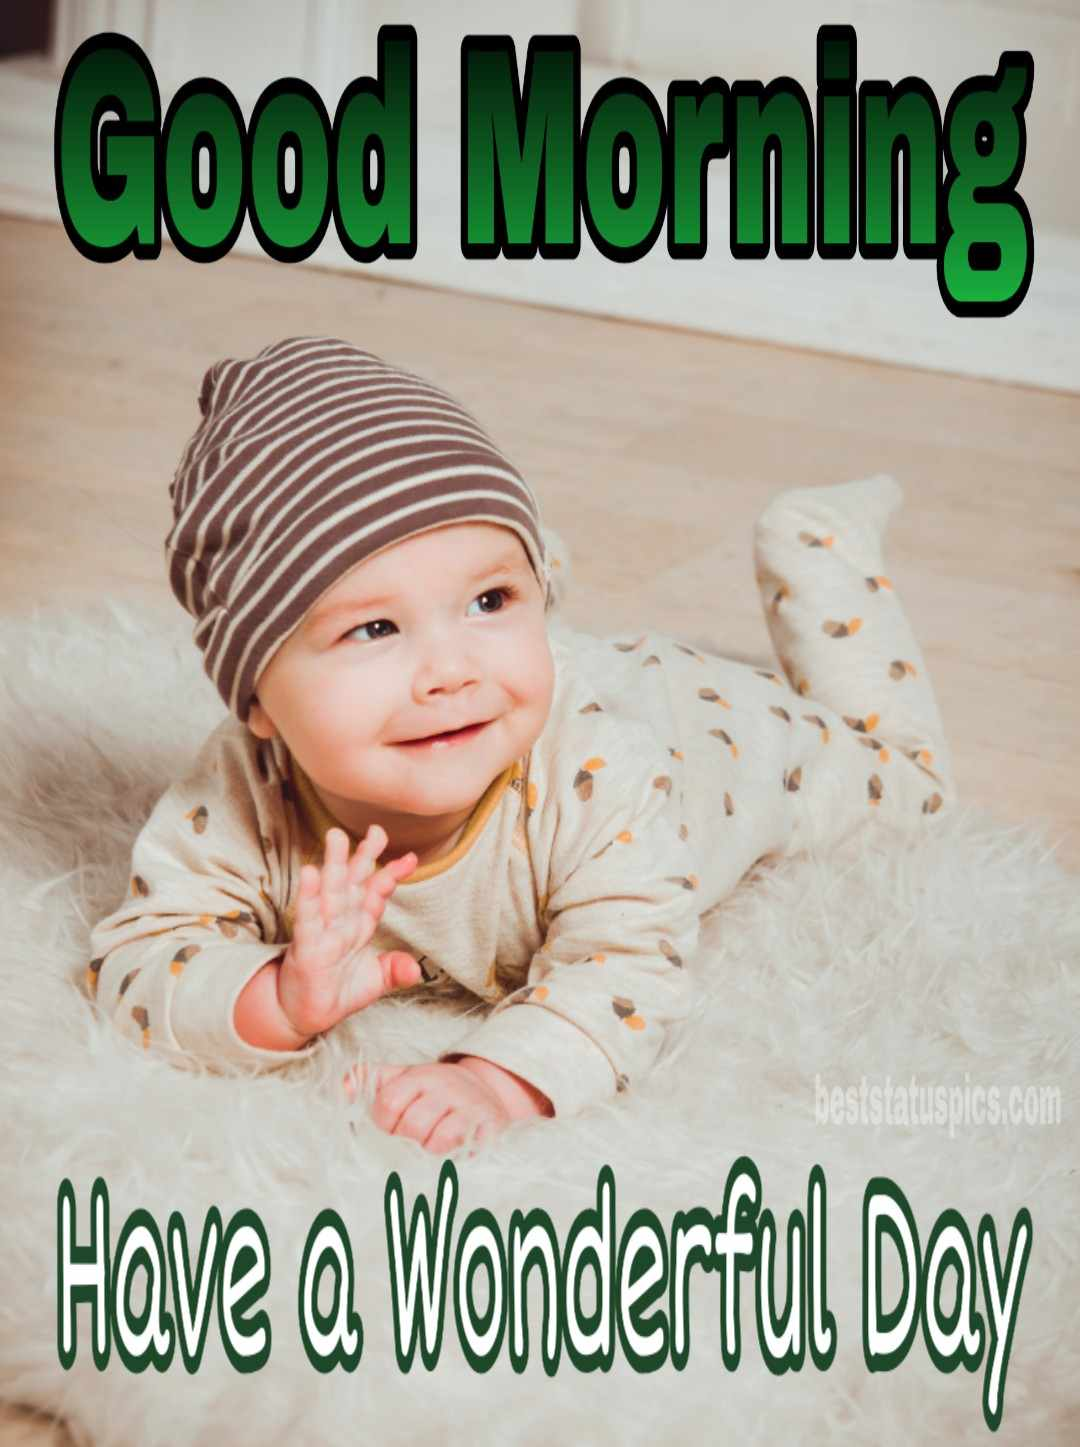 Good morning with beautiful baby smile pictures for friends